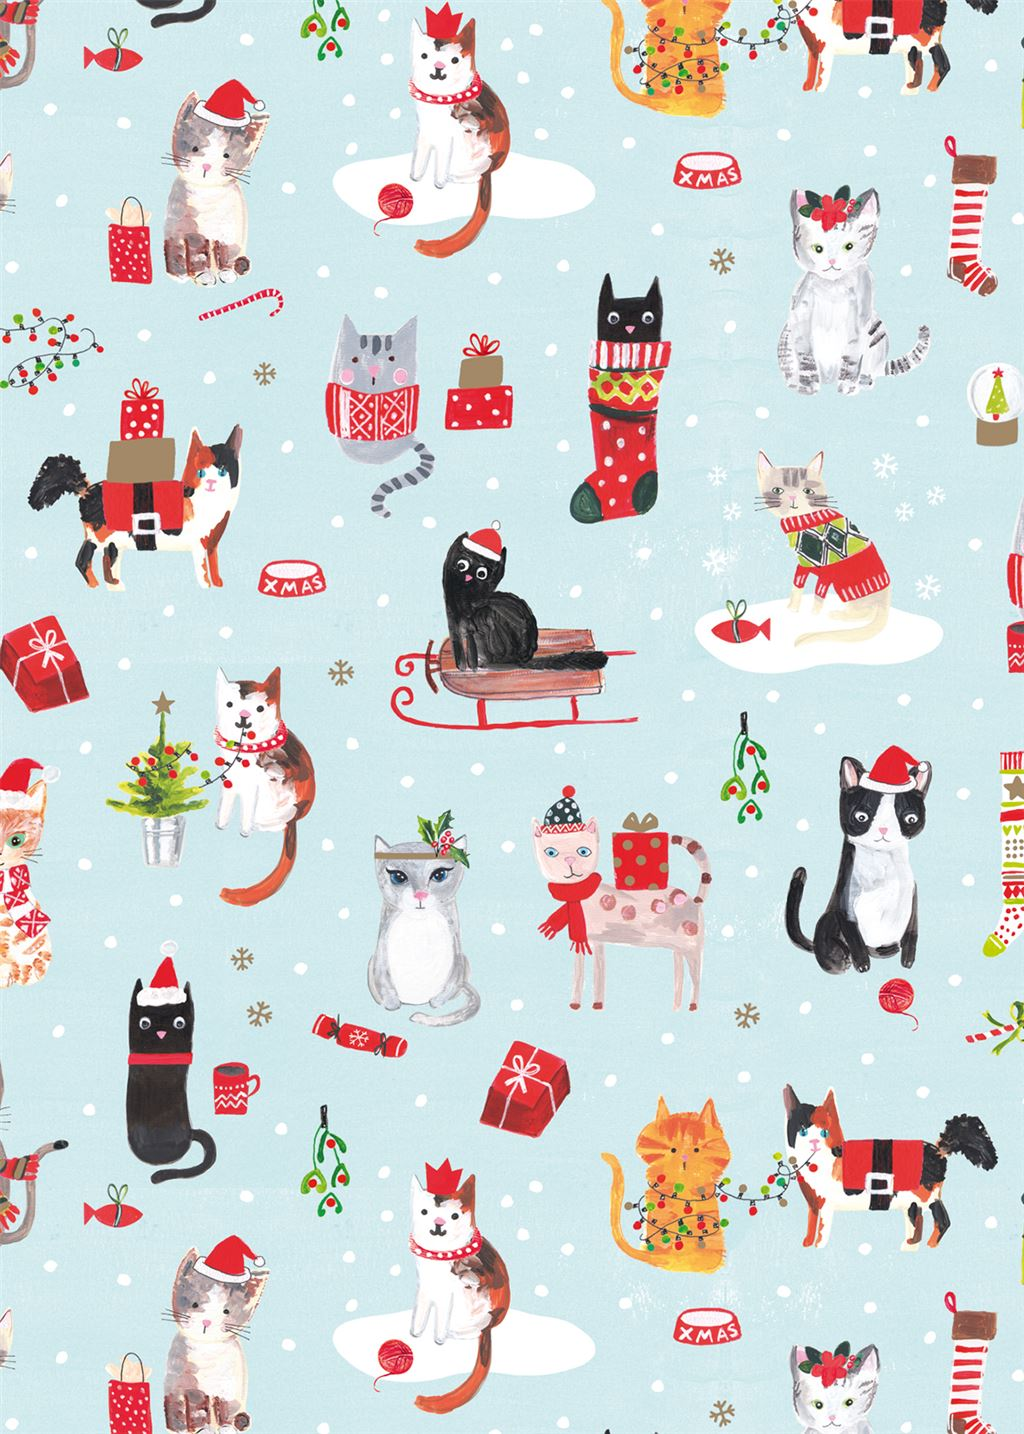 Festive Cats Christmas Wrapping Paper